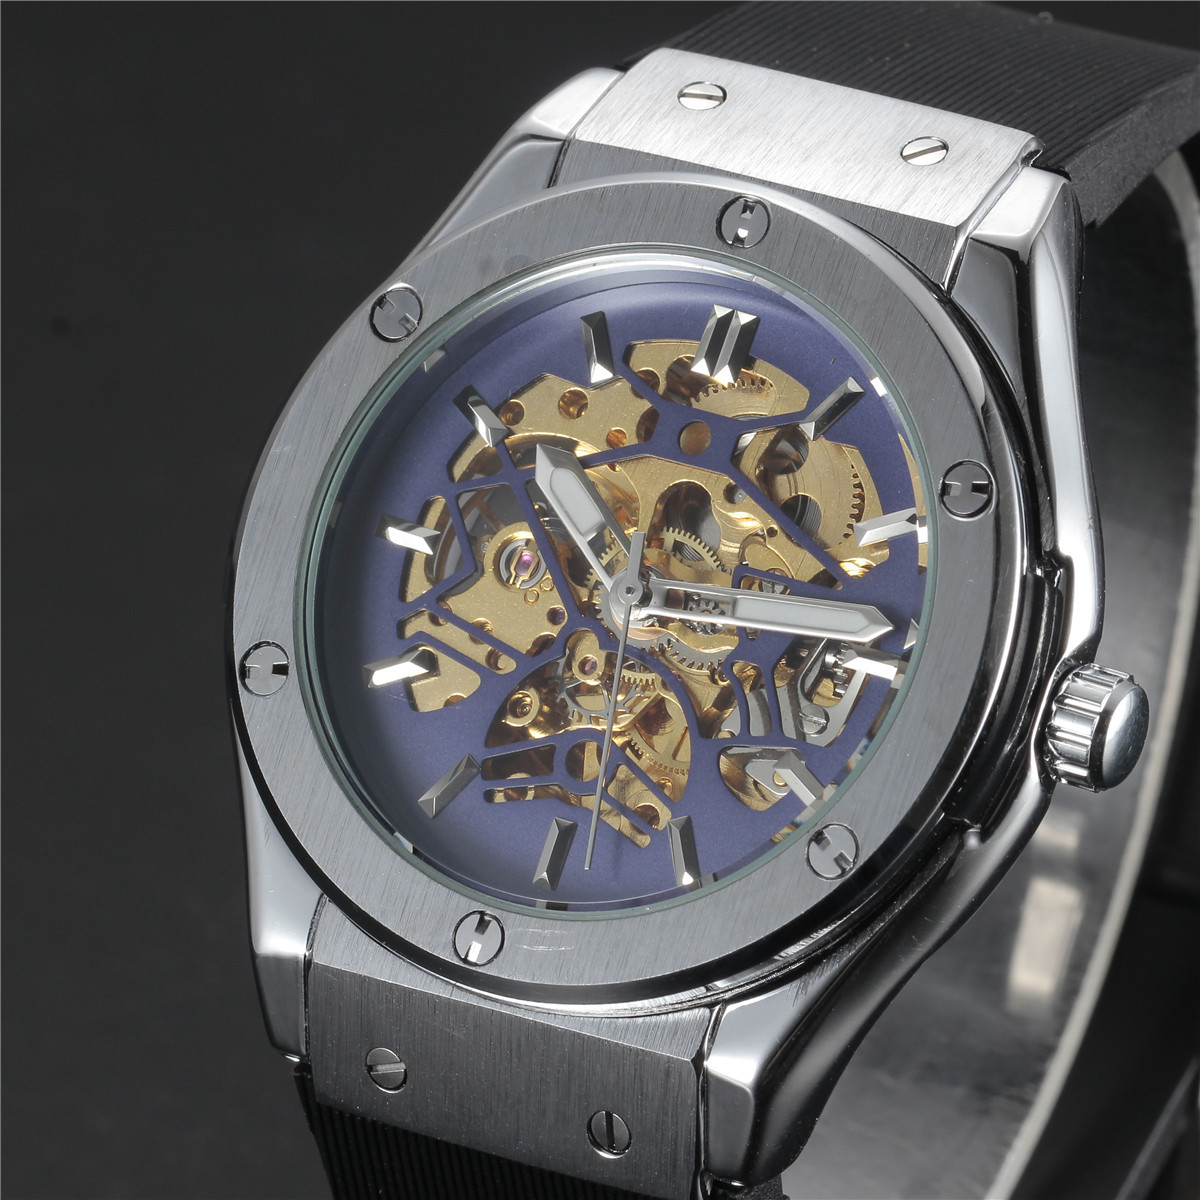 WINNER Watches Men Luxury Brand Sports Casual Military Clock Wristwatches Automatic Wind Mechanical Skeleton Watch Rubber Strap famous brand fngeen role luxury mechanical watch men sport automatic watches self wind nylon strap wristwatch male clock sports